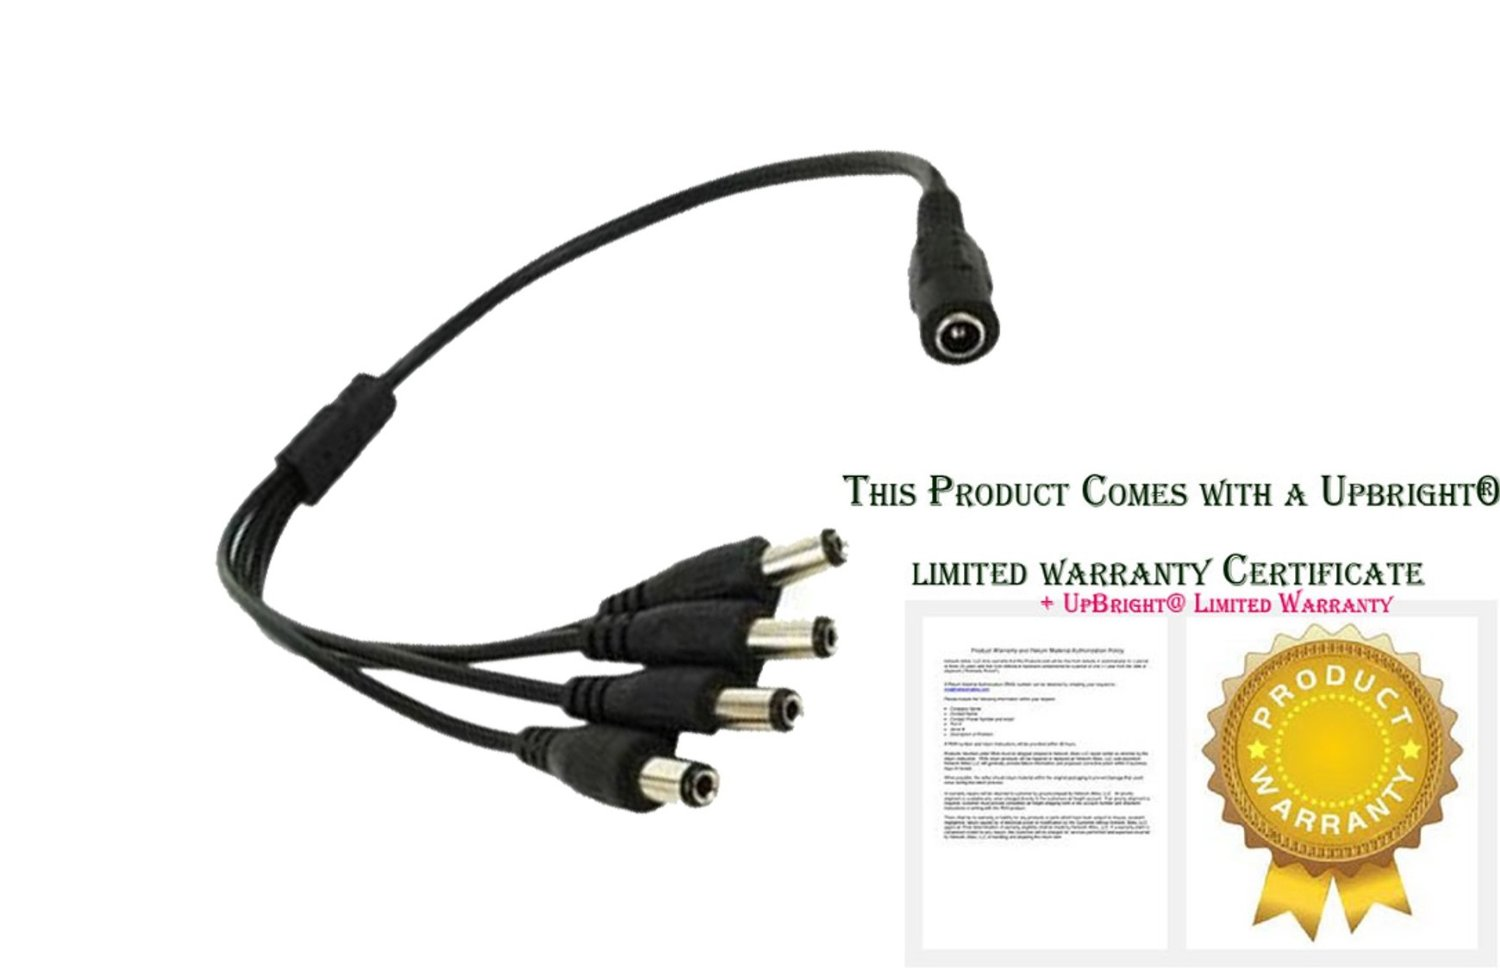 UpBright® 4-Plug Splitter 4-Way Power Cord Cable For Hikvision Surveillance/Network IP Camera 12V Series DS-2CE15C2P-IR DS-2CE16C2P-IT3 DS-2CD2012-I DS-2CD2032-I DS-2CD2112-I DS-2CD2132-I DS-2CD2612-I DS-2CD3112D-I DS-2CD3132D-I DS-2CE582N DS-2CE55C2P-IRP